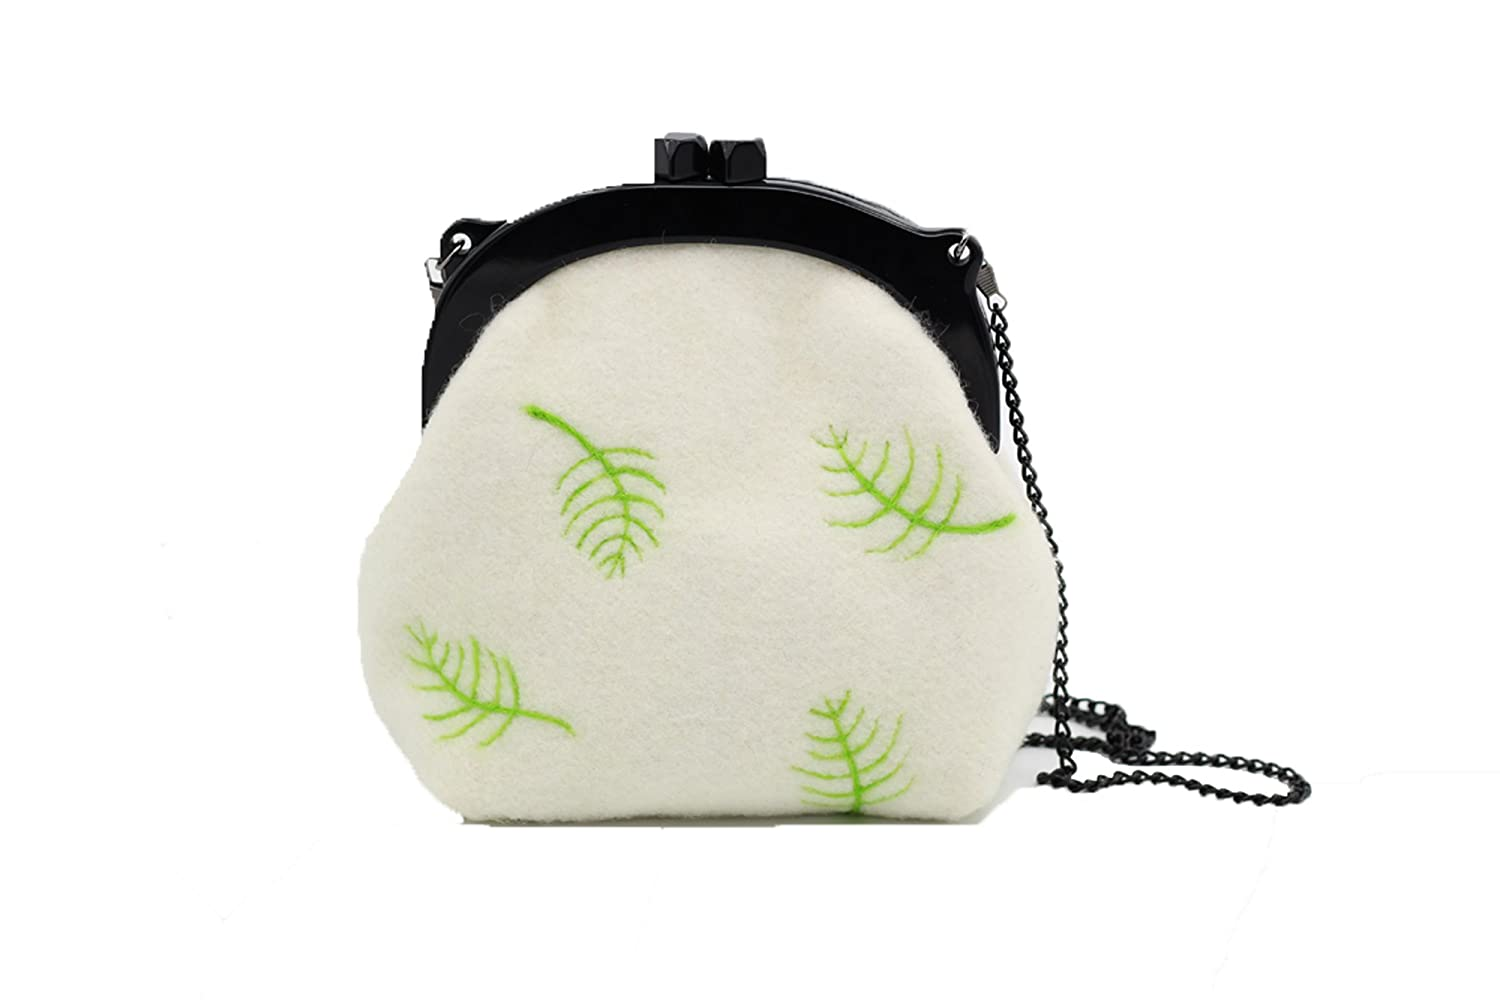 Ysting Felted Wool Leaves Clutch, Hand Felted Purse, Wool Lined Clutch, Fall Winter Purse